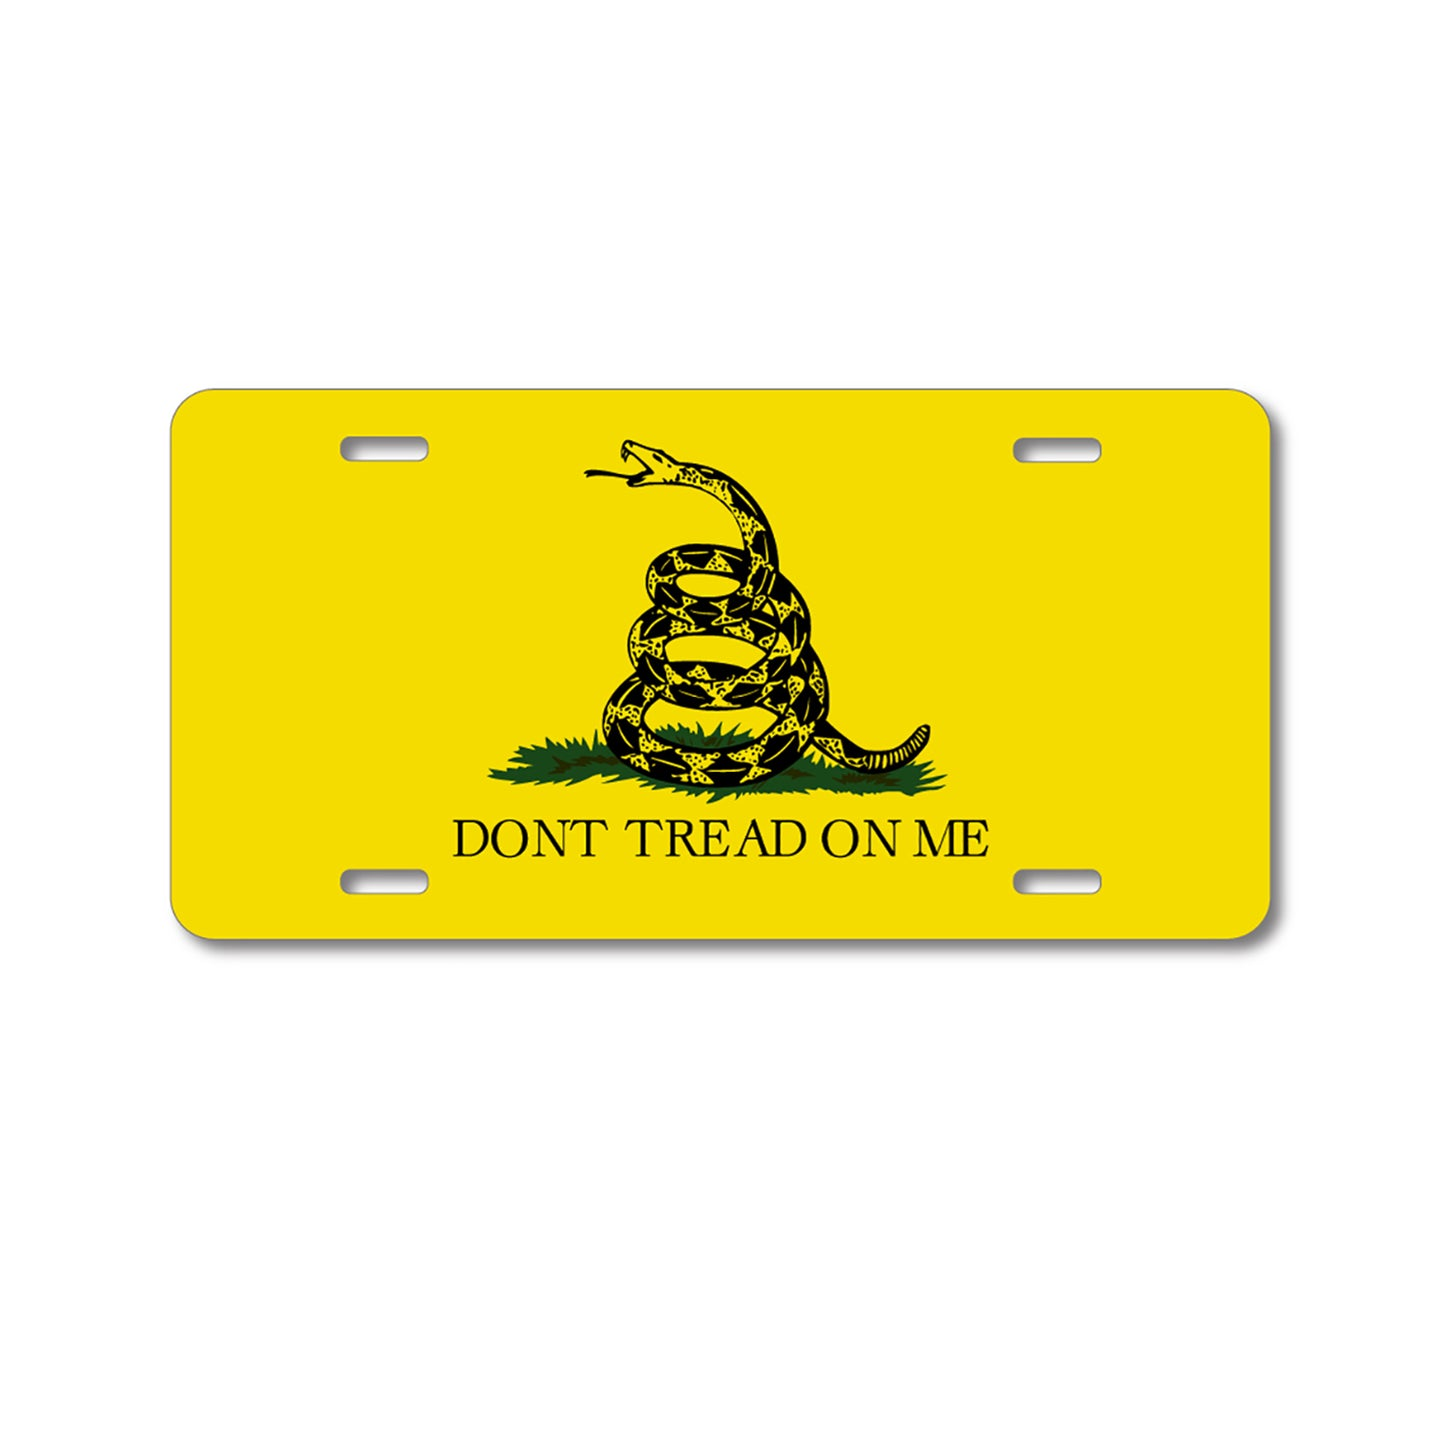 DistinctInk Custom Aluminum Decorative Vanity Front License Plate - Don't Tread On Me - Gadsden Flag